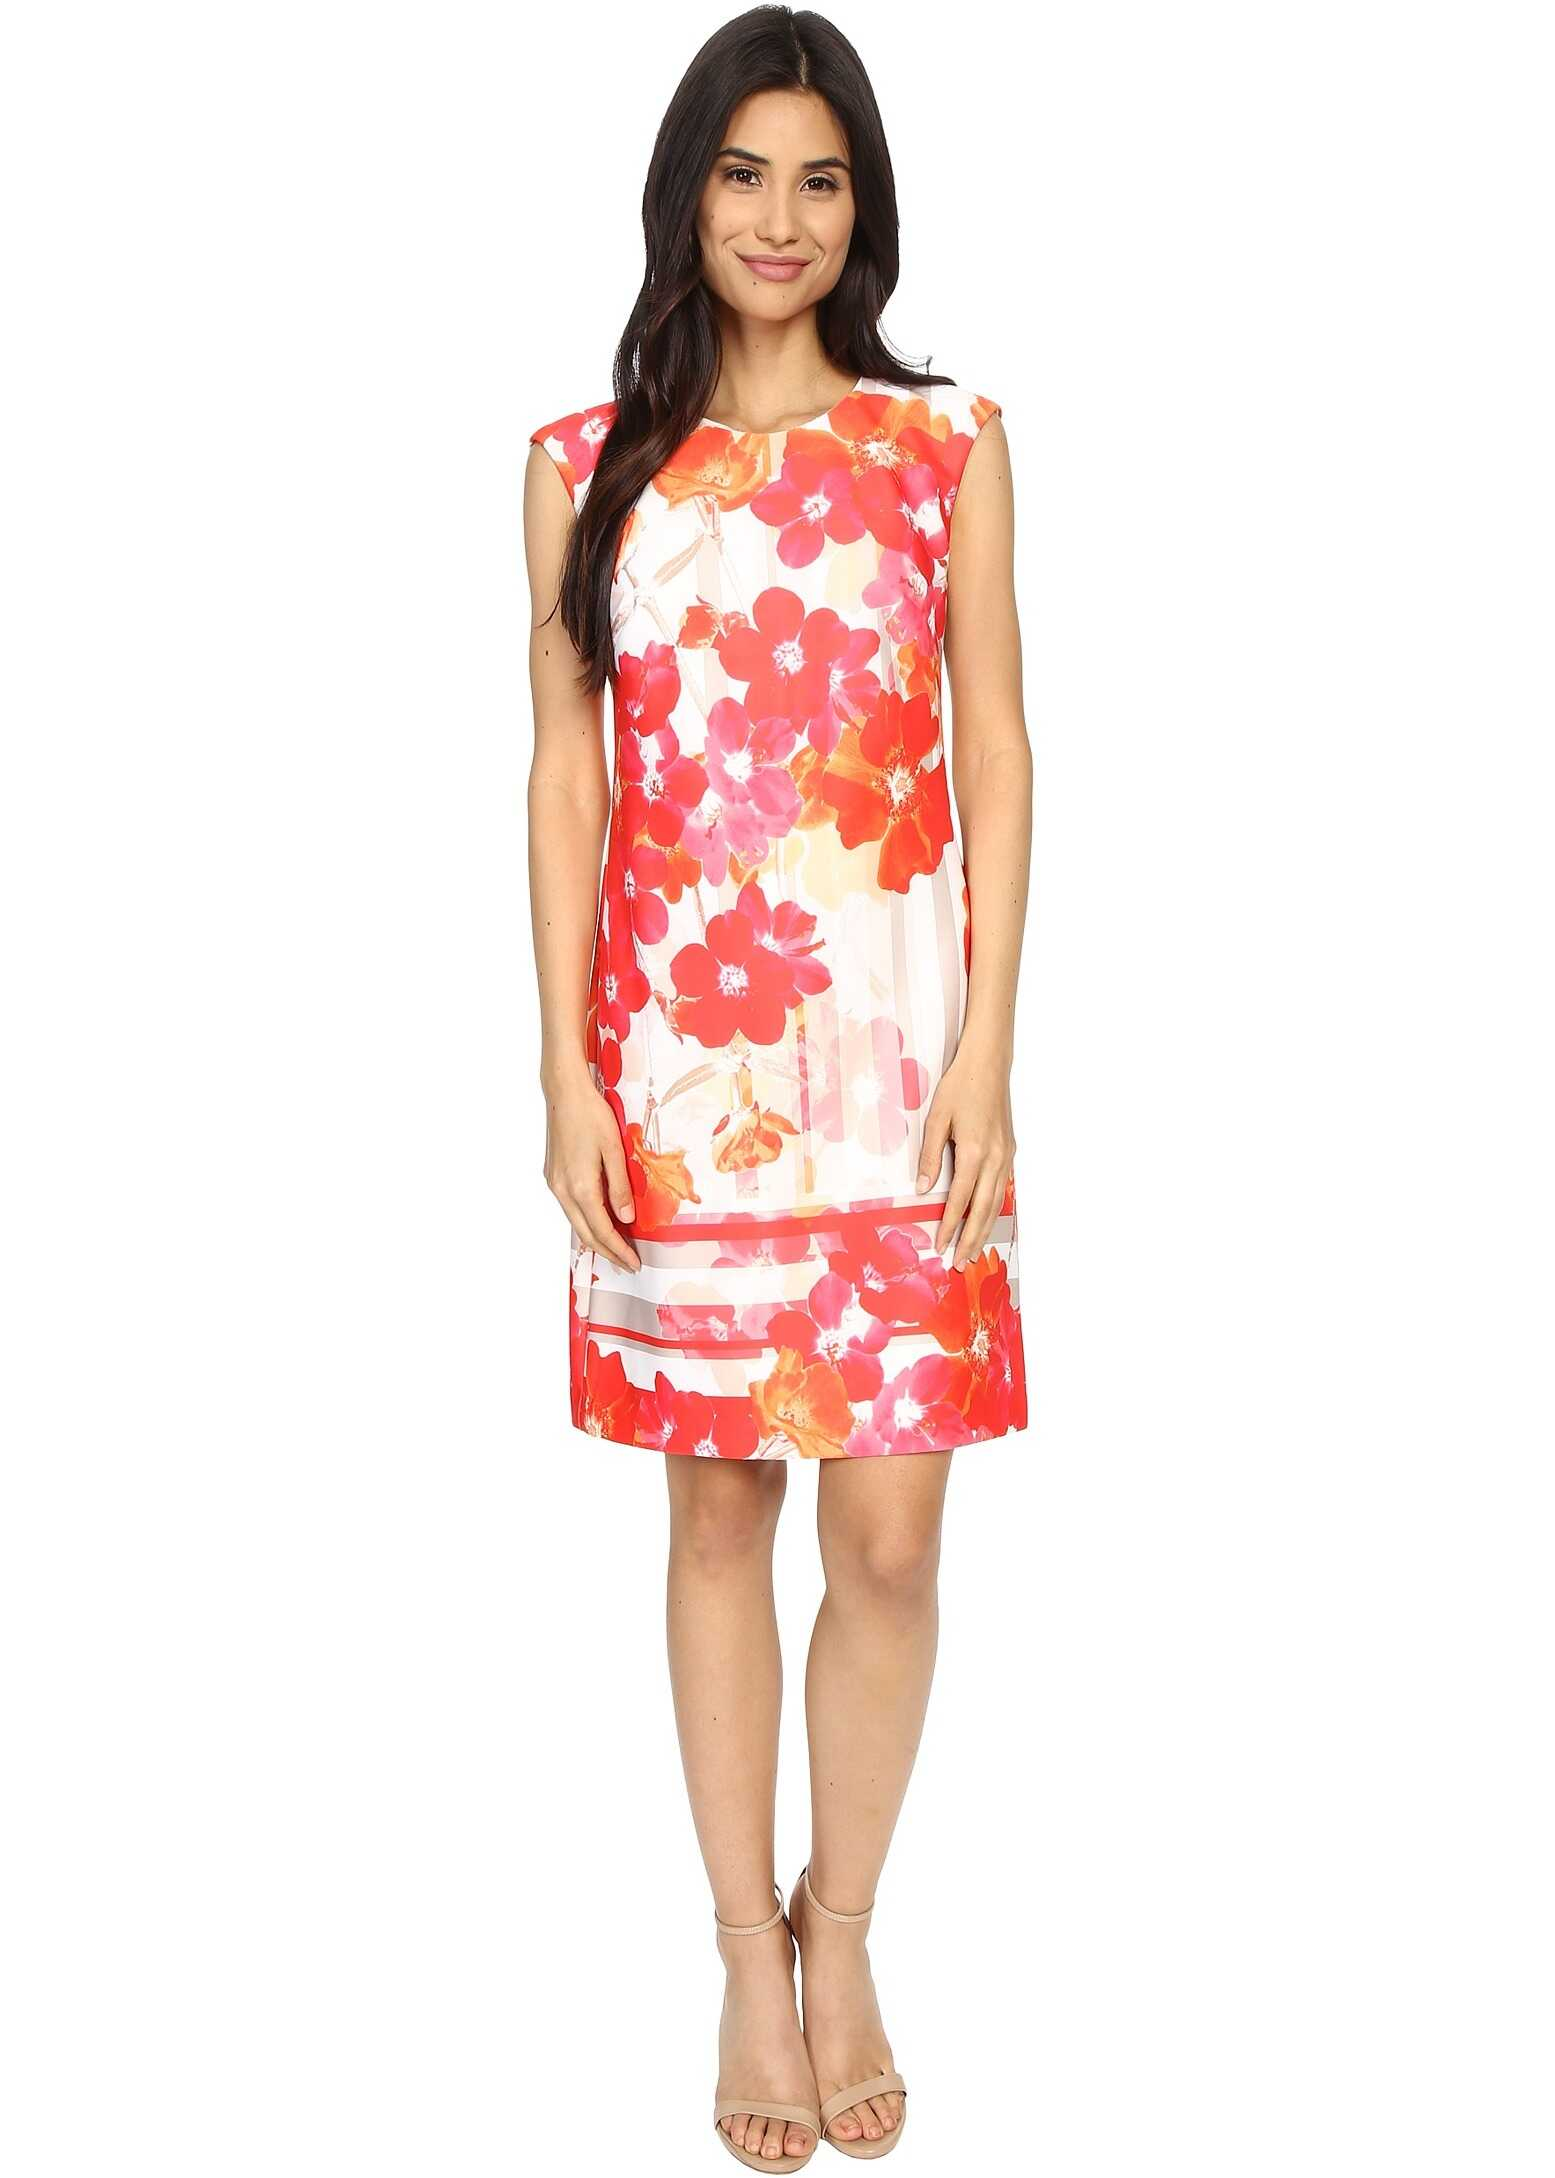 Vince Camuto Printed Scuba Extended Cap Sleeve Shift Dress Pink Multi